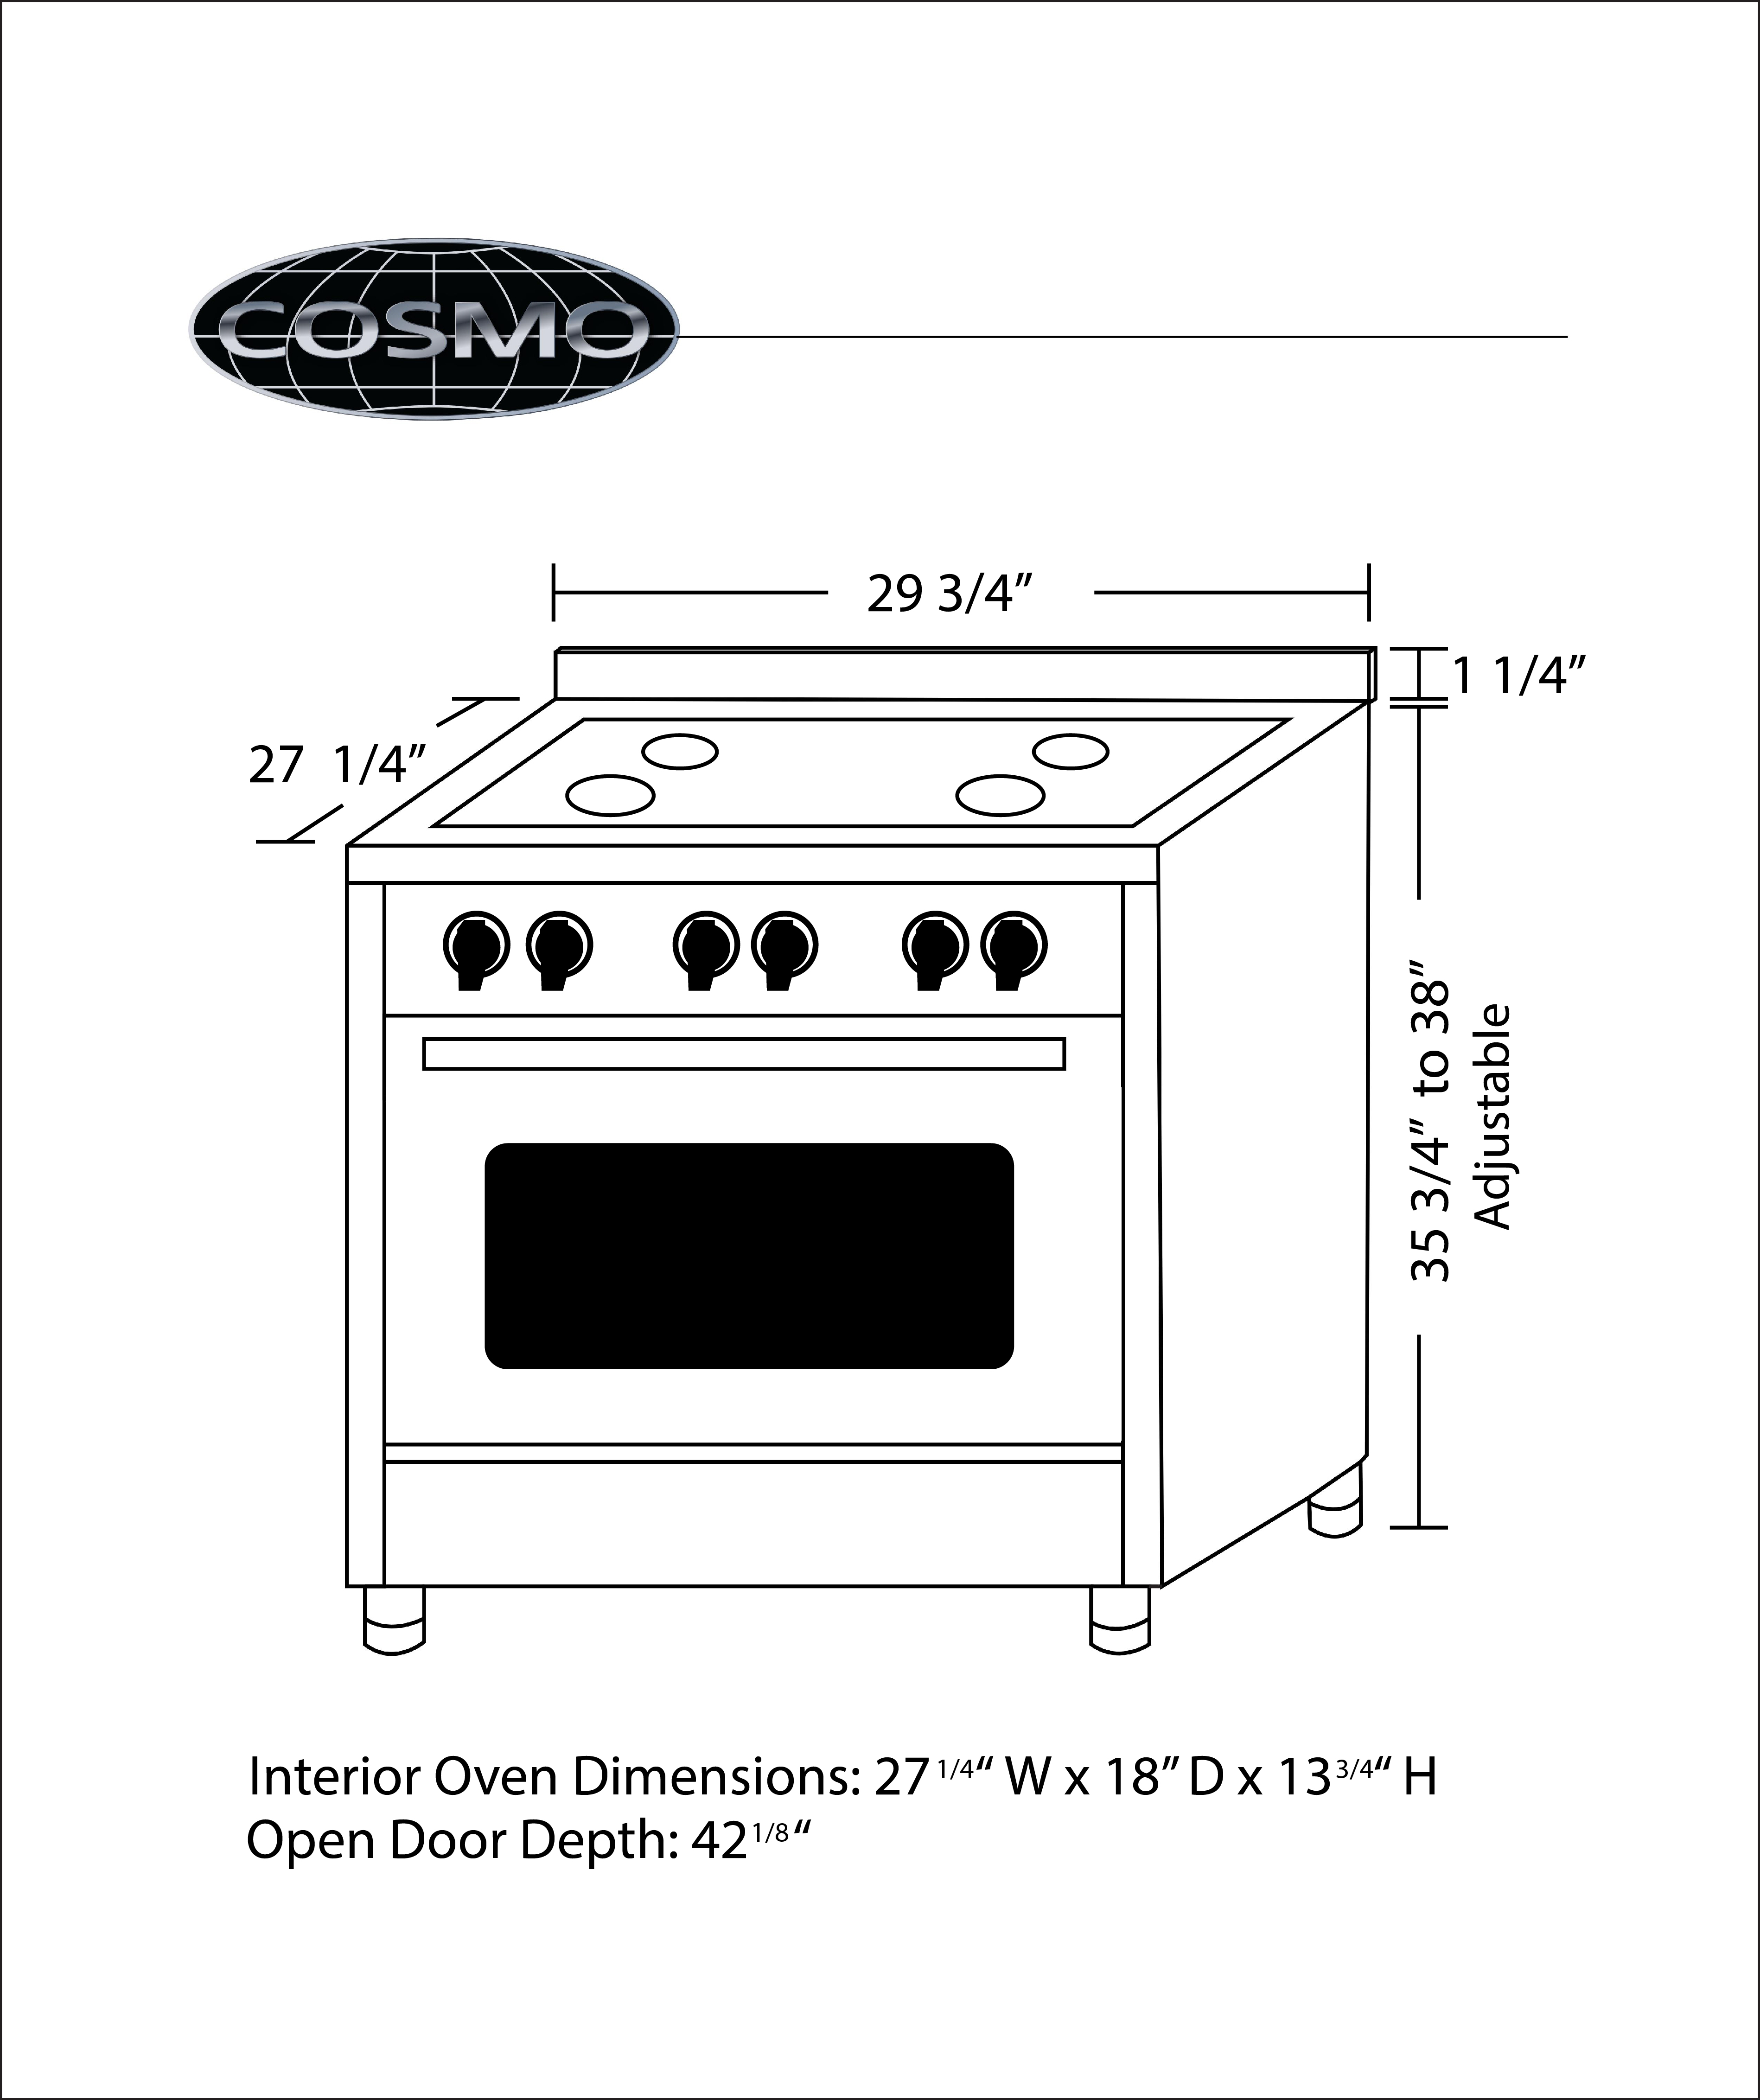 Cosmo COS-DFR304 30 in. Professional Style Gas Range with 3.9 cu. ft.  Electric Convection Oven with Turbo True European Convection, 4 Italian  Made ...